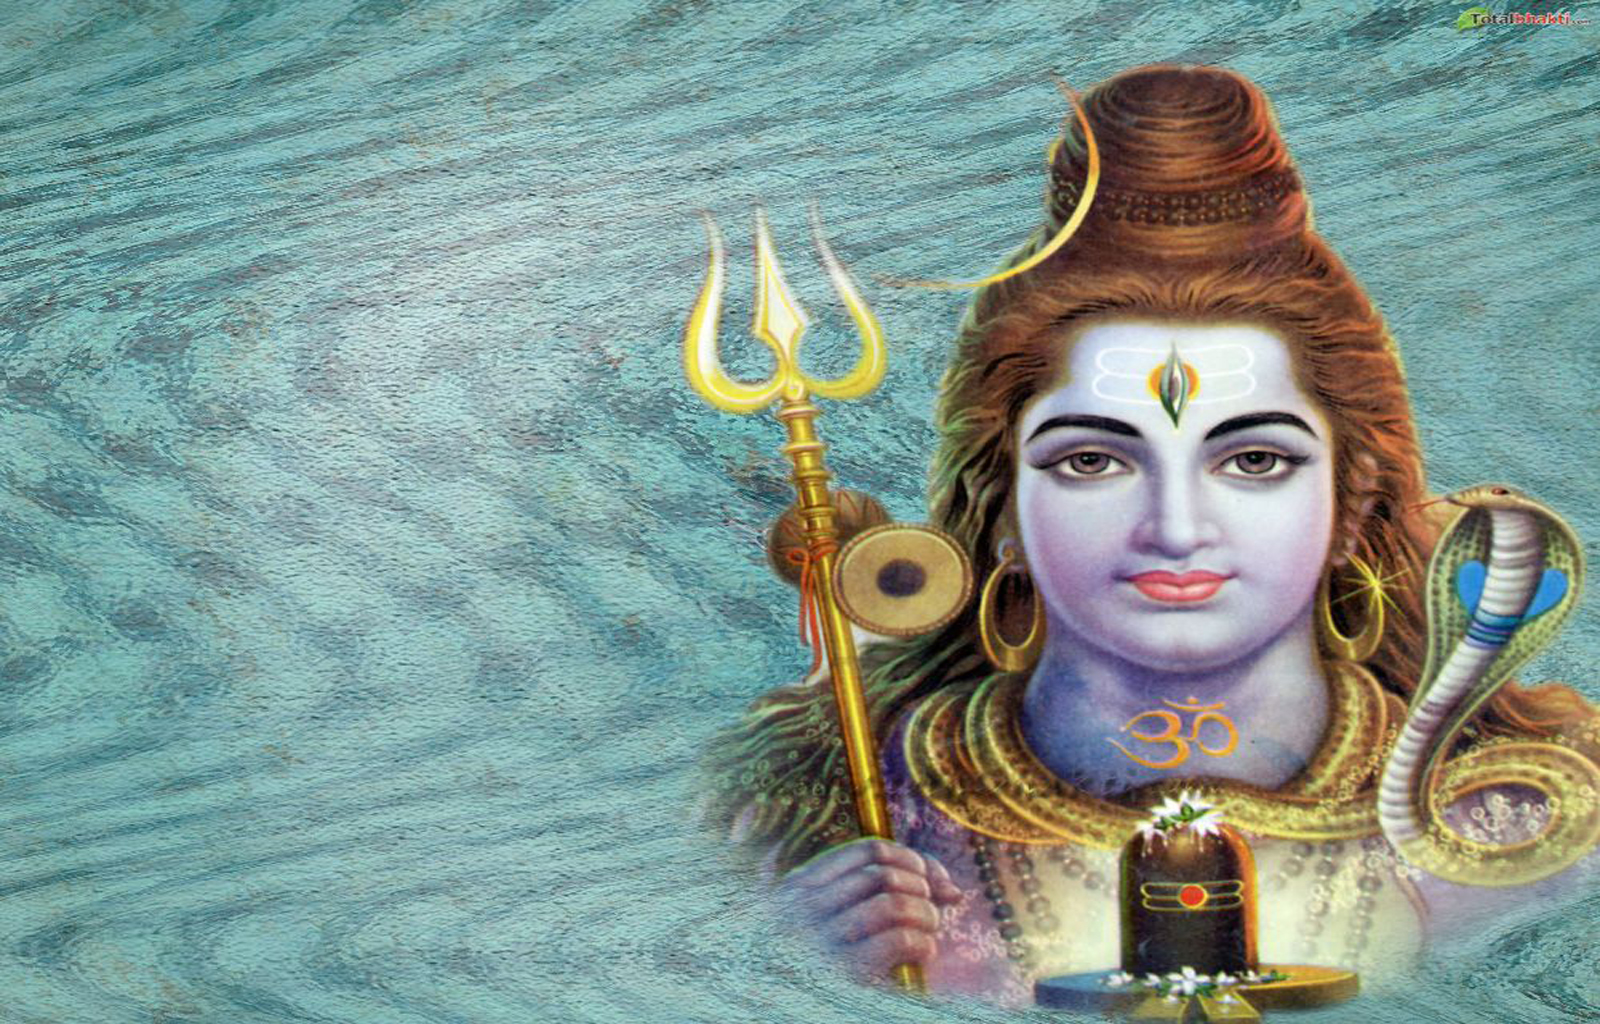 Most Inspiring Wallpaper High Resolution Lord Shiva - Lord-Shiva-51  Best Photo Reference_28143.jpg